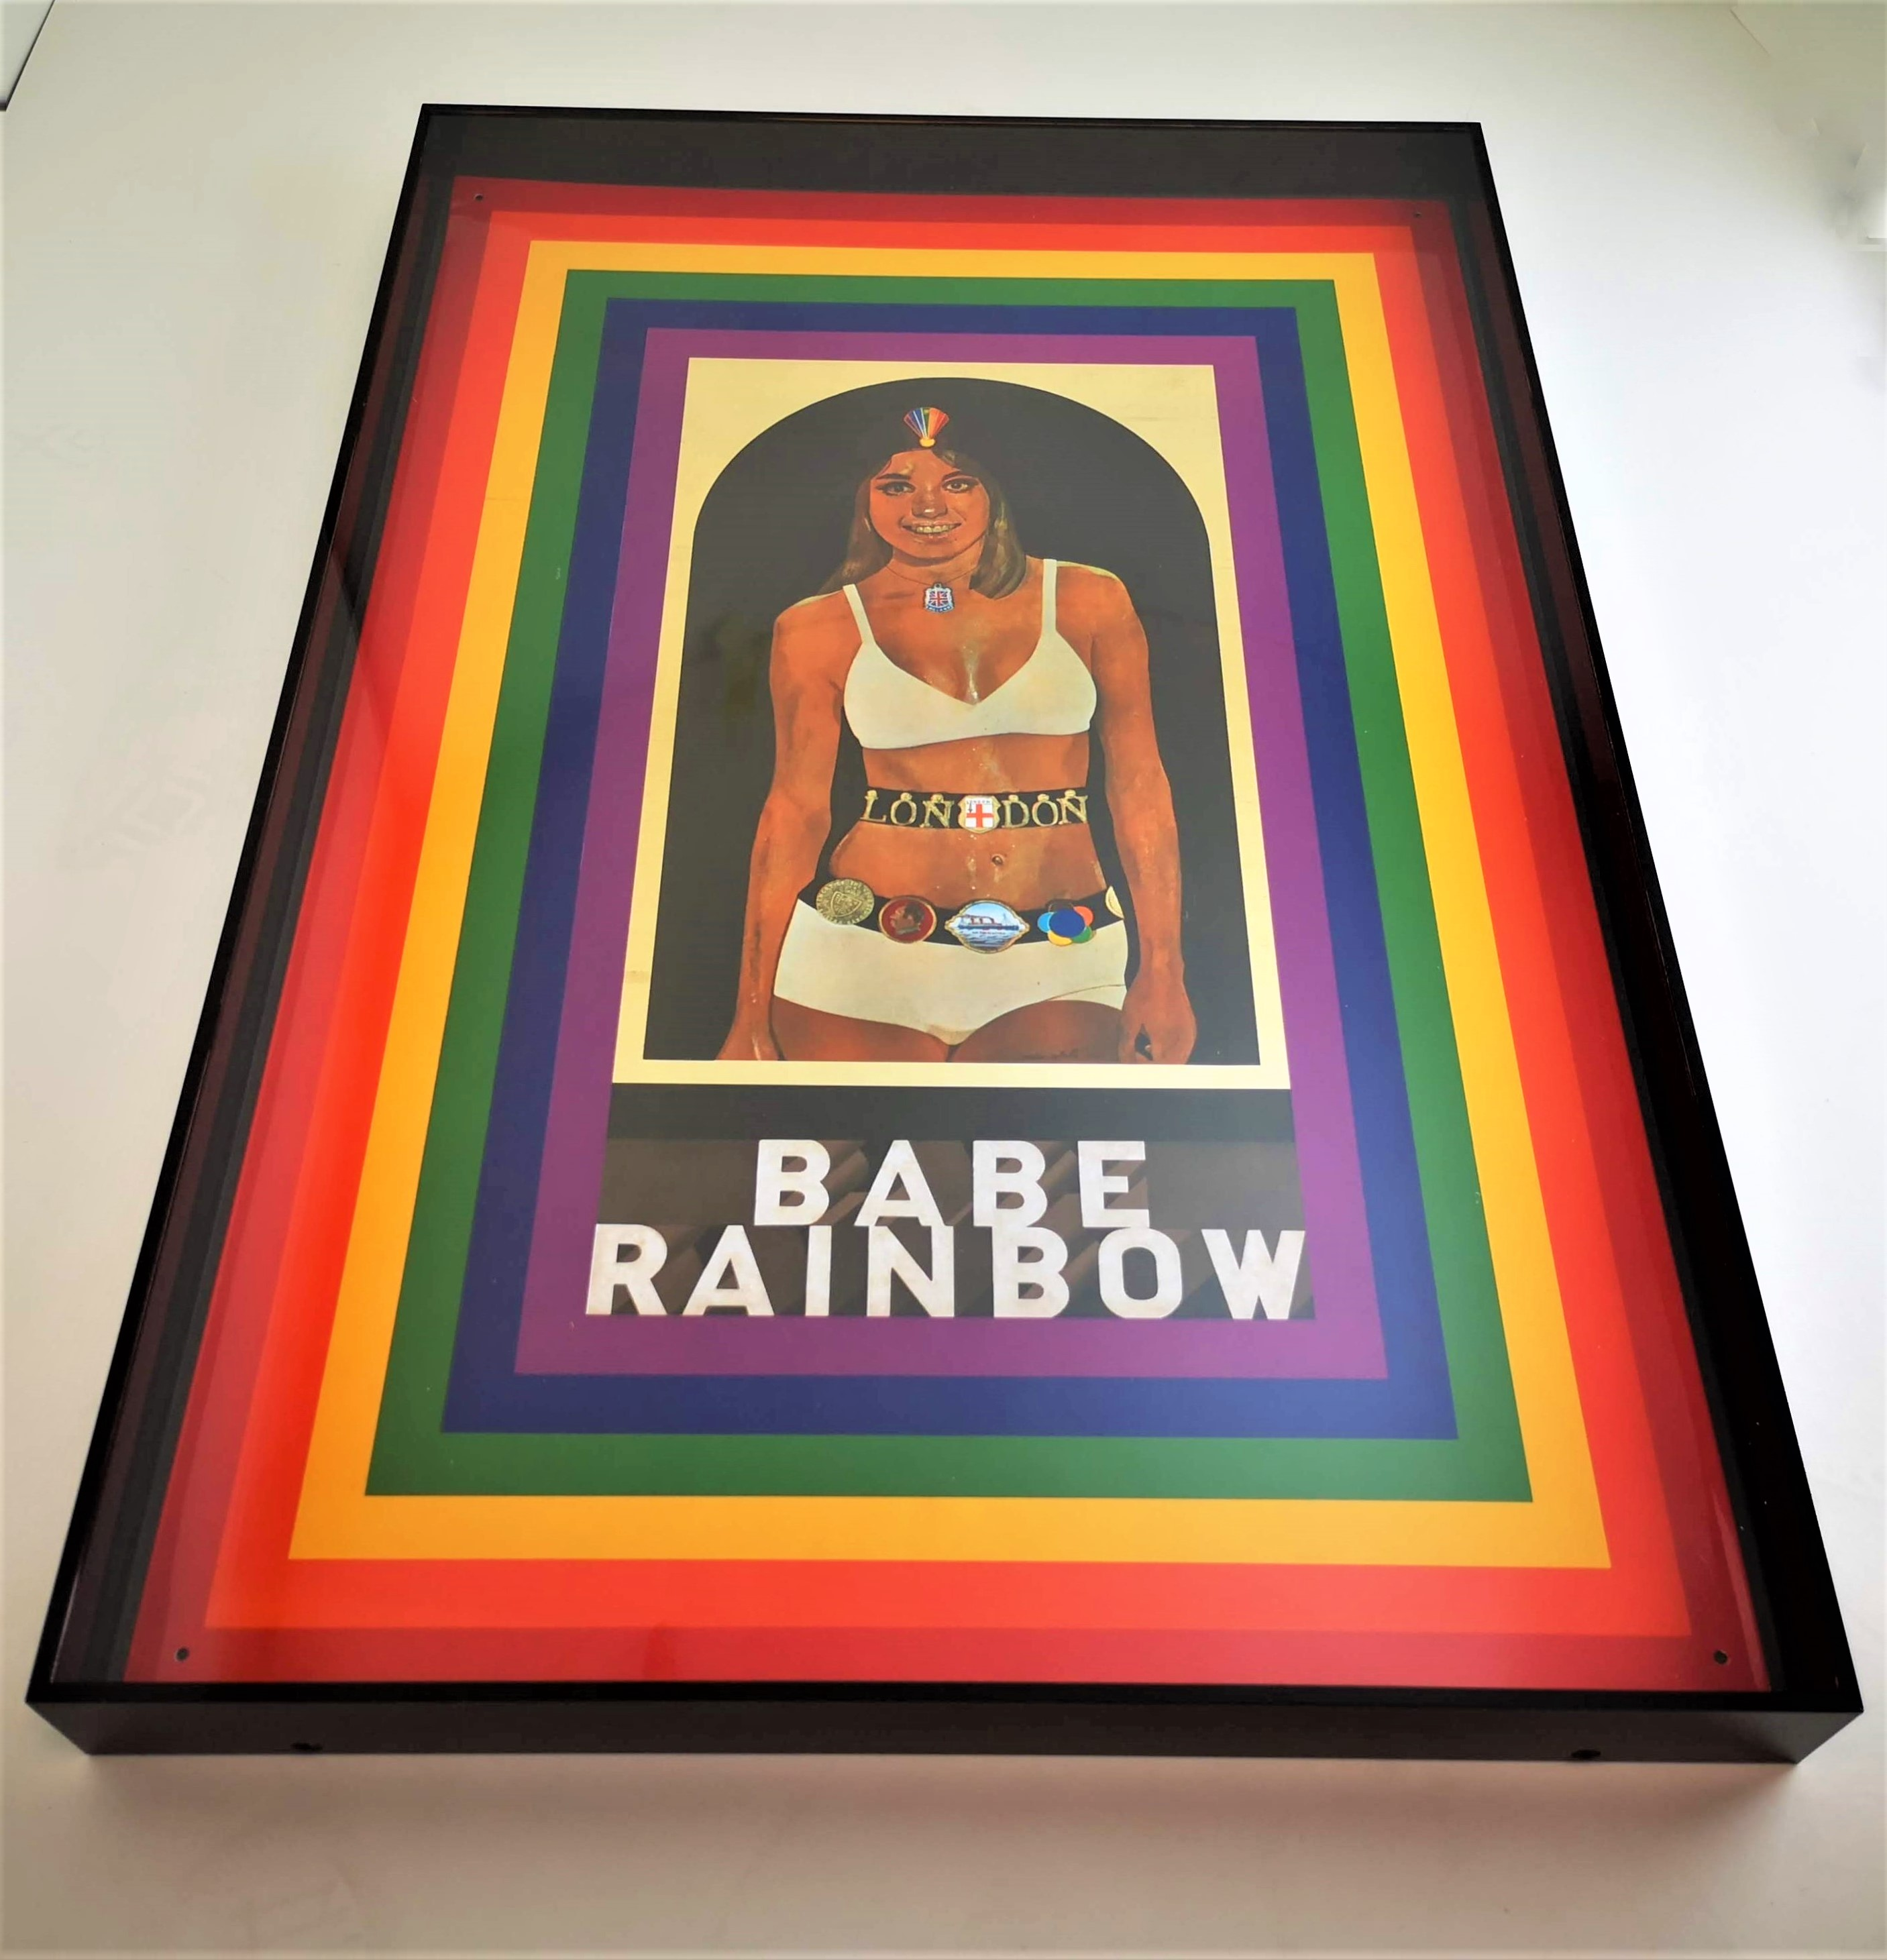 Peter Blake's Babe Rainbow in Black Perspex thumbnail